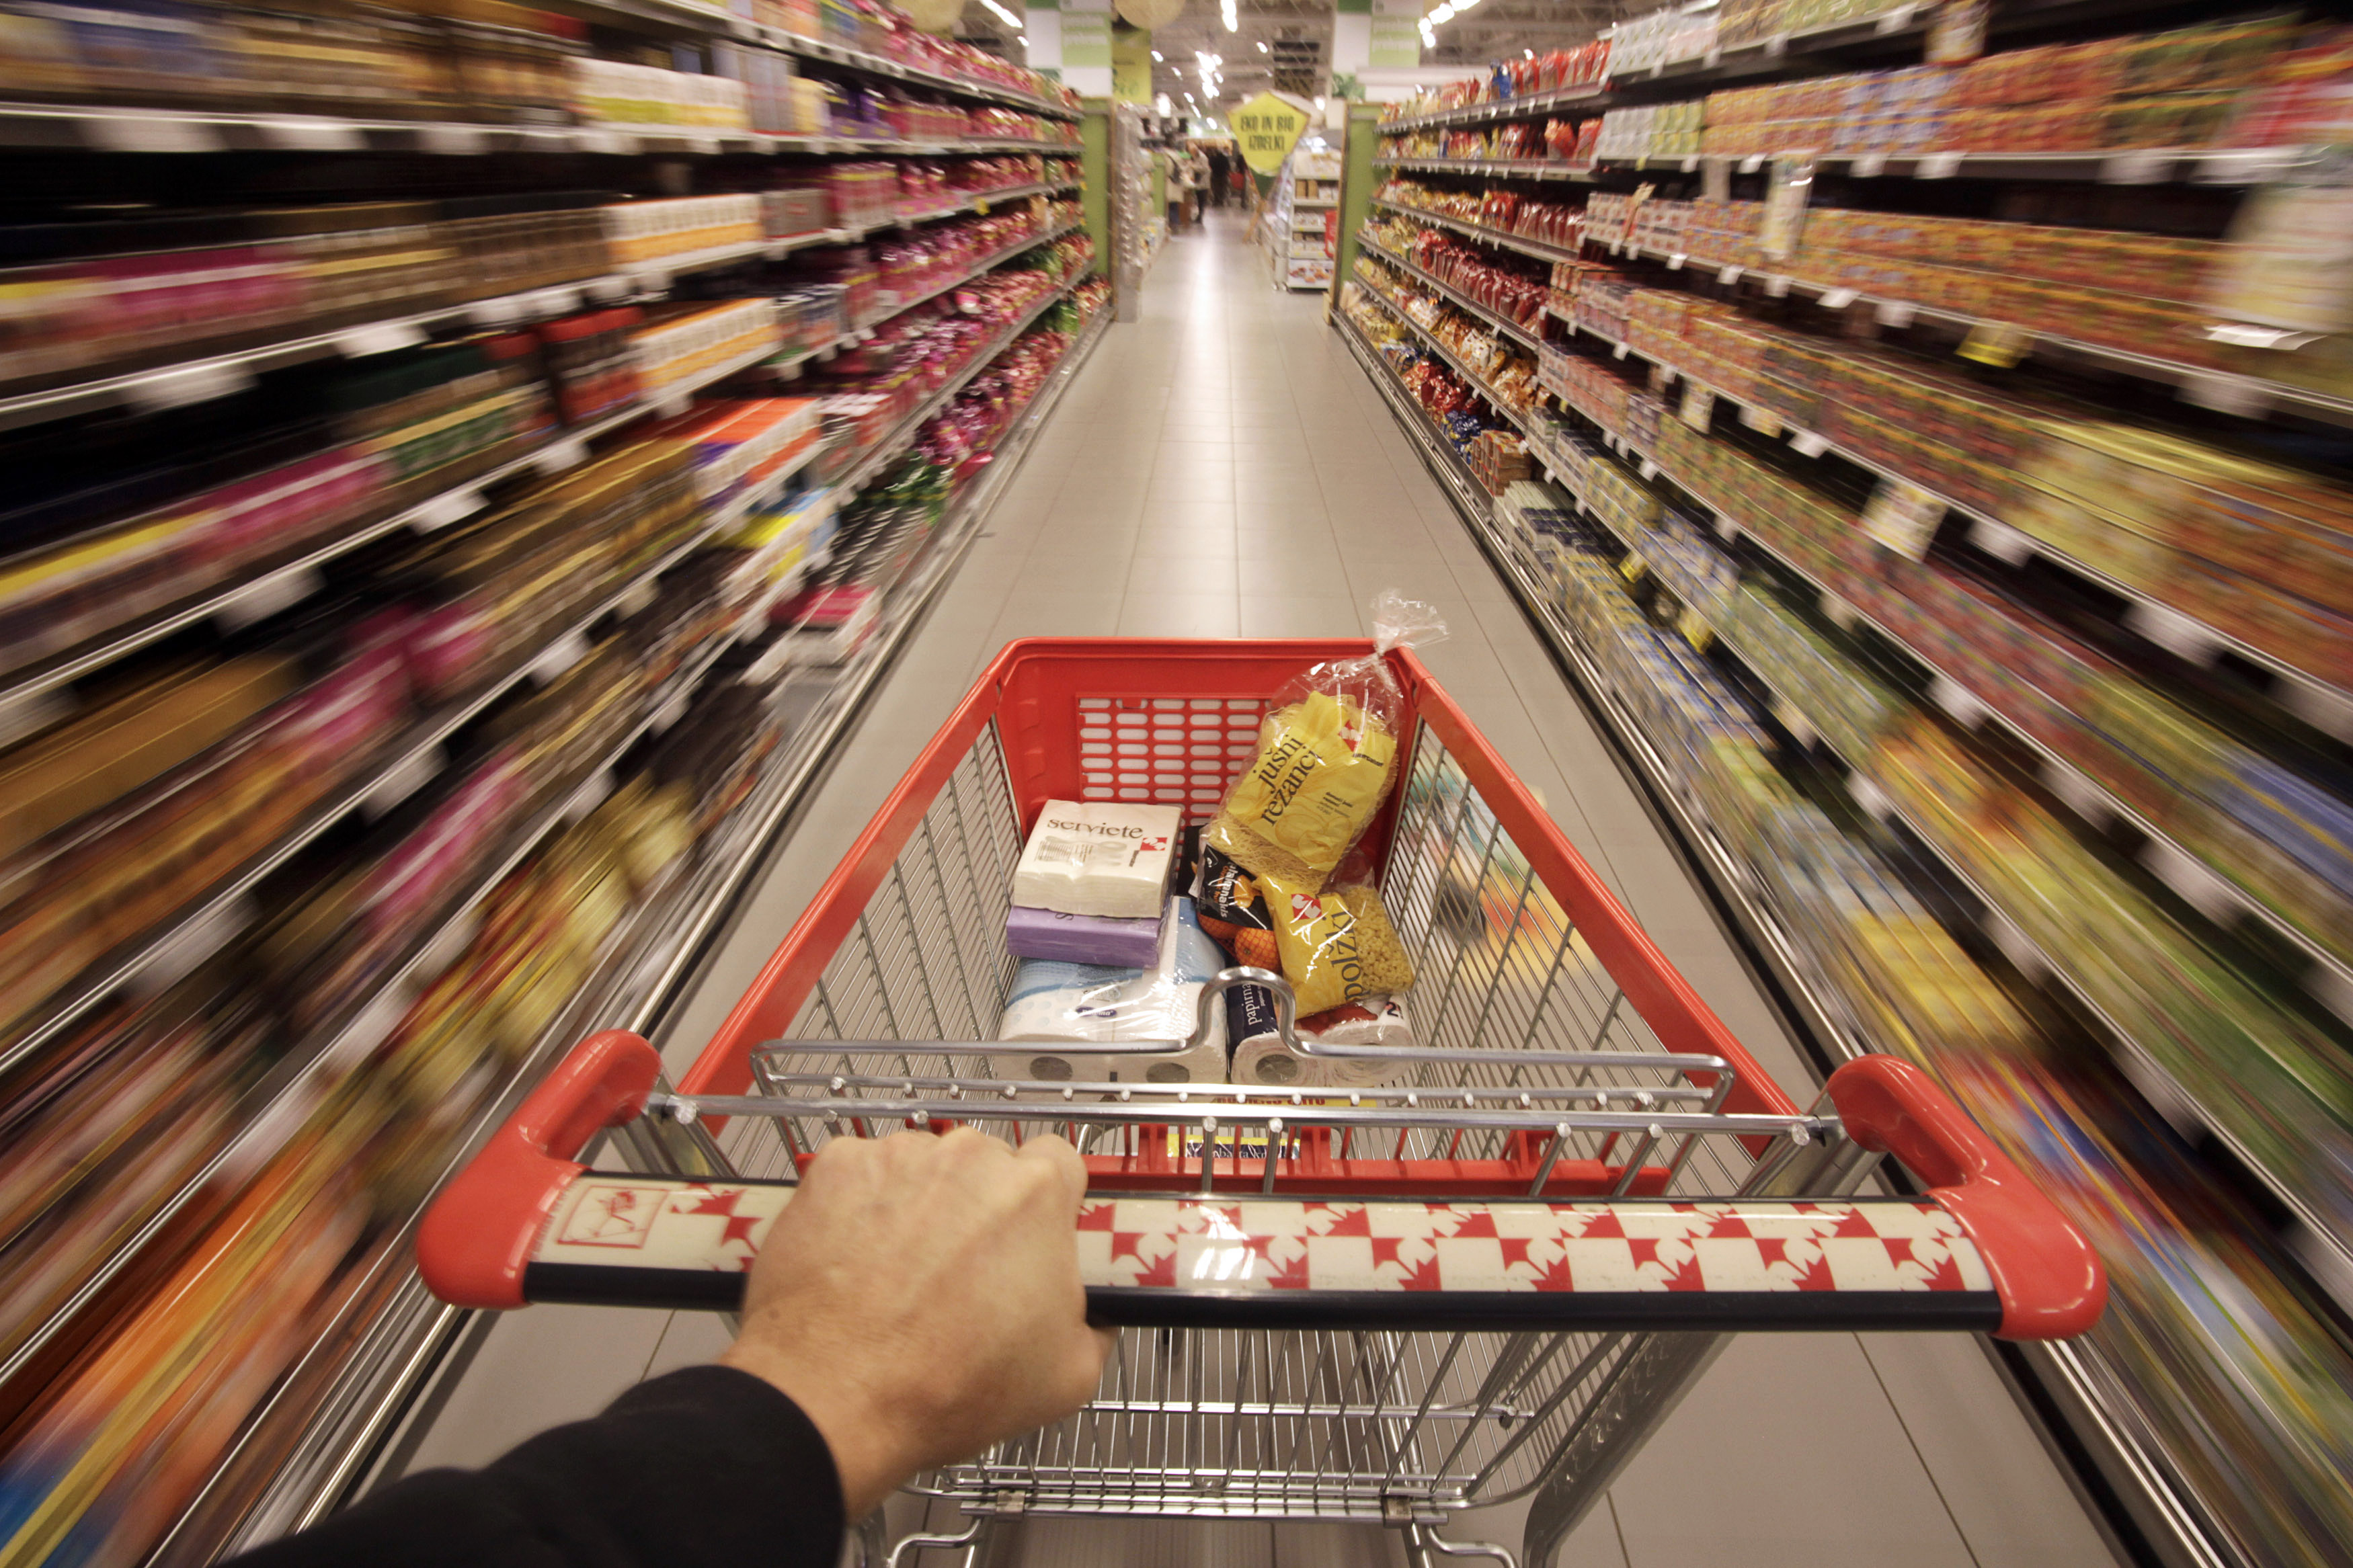 A shopping cart is pushed down the aisle in this REUTERS photo illustration.